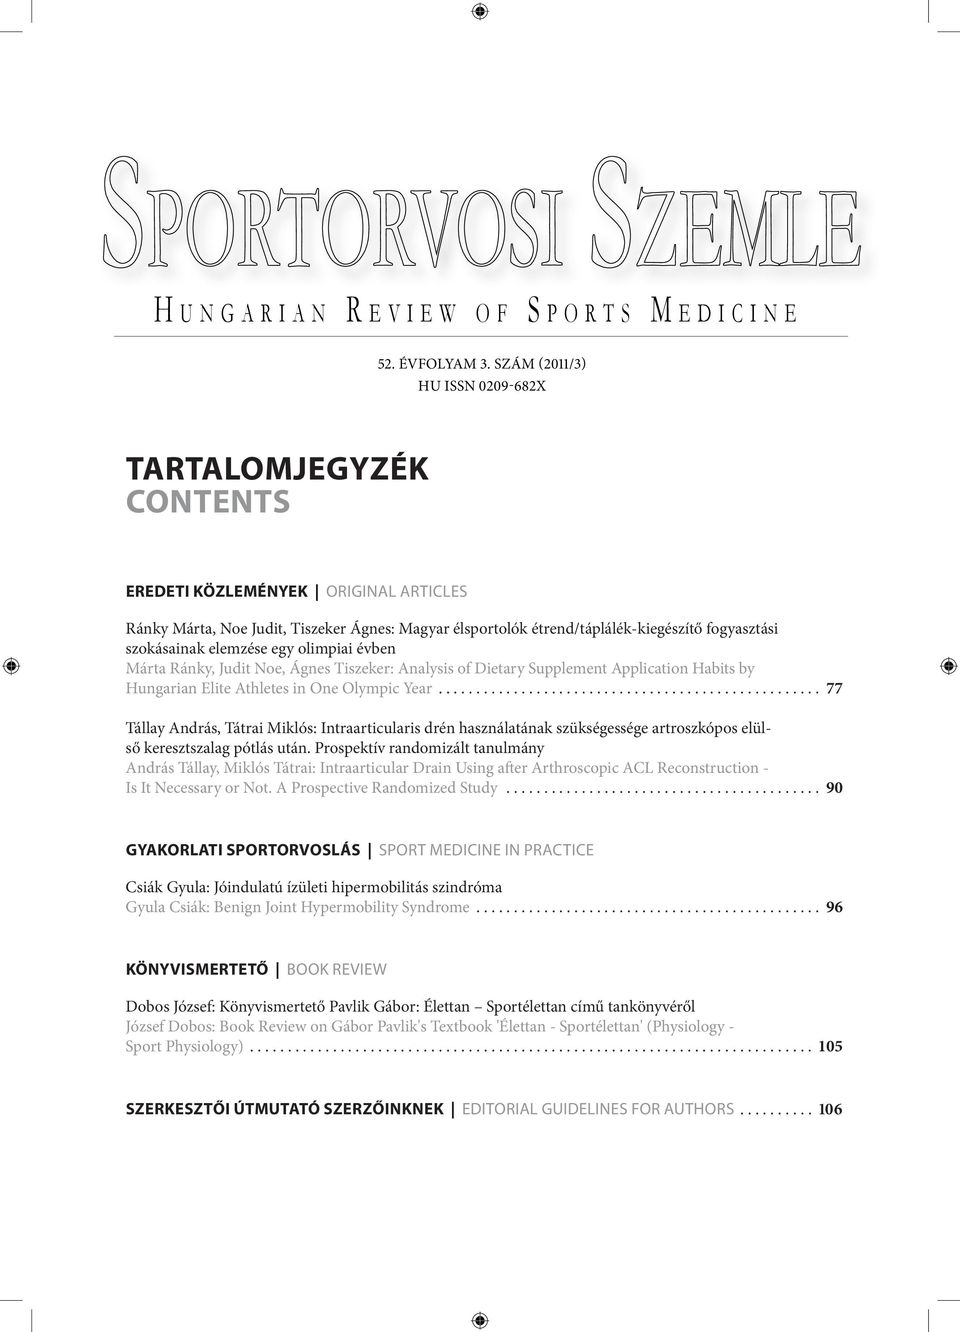 elemzése egy olimpiai évben Márta Ránky, Judit Noe, Ágnes Tiszeker: Analysis of Dietary Supplement Application Habits by Hungarian Elite Athletes in One Olympic Year.